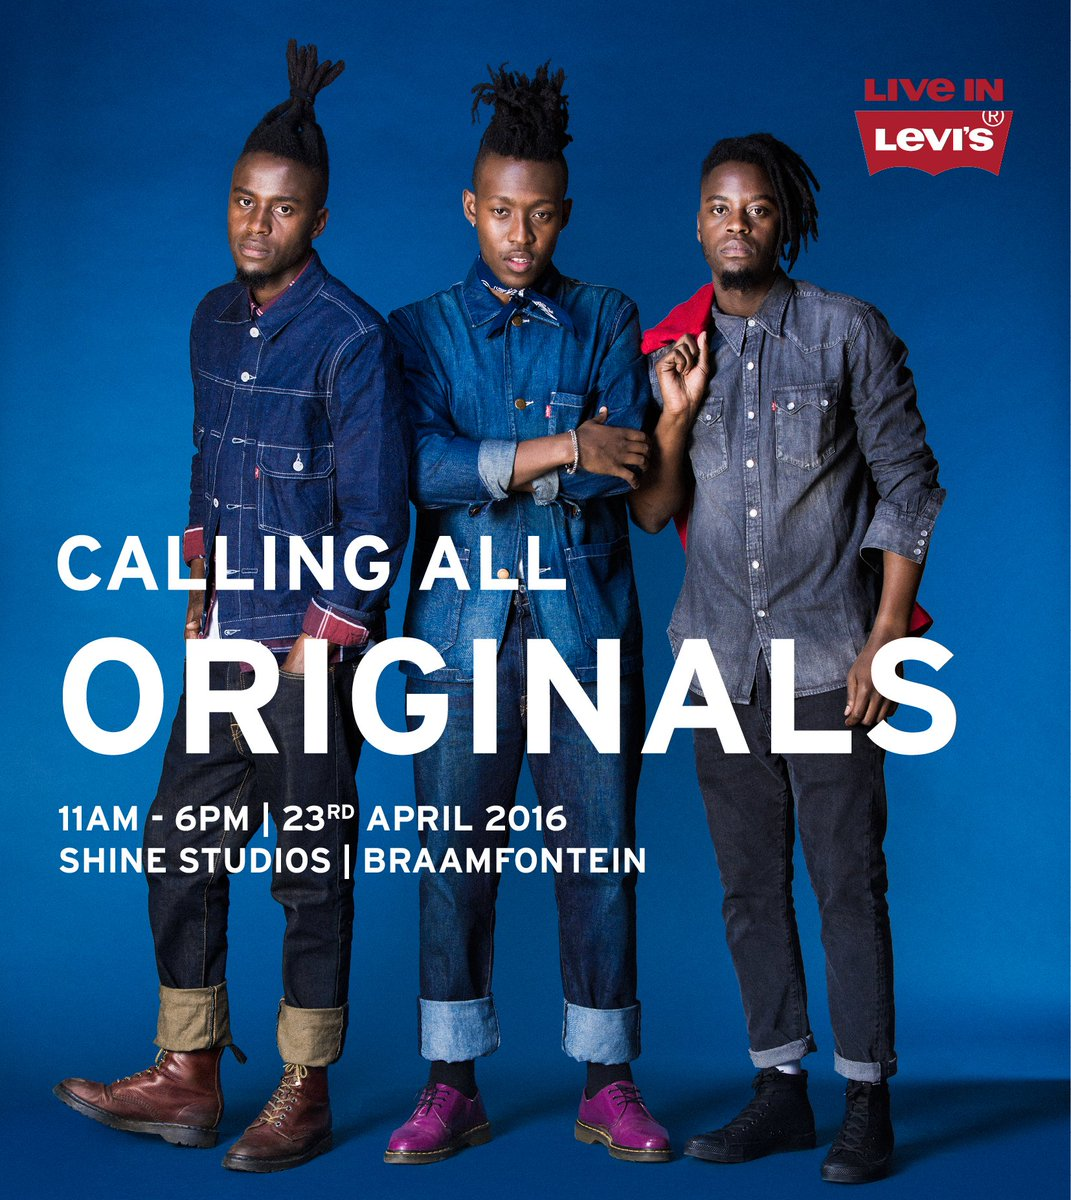 Be a part of the Levi's® We Are Original casting on 23 April. More info on https://t.co/MhEX4J4hln https://t.co/ZhMlvjypNH